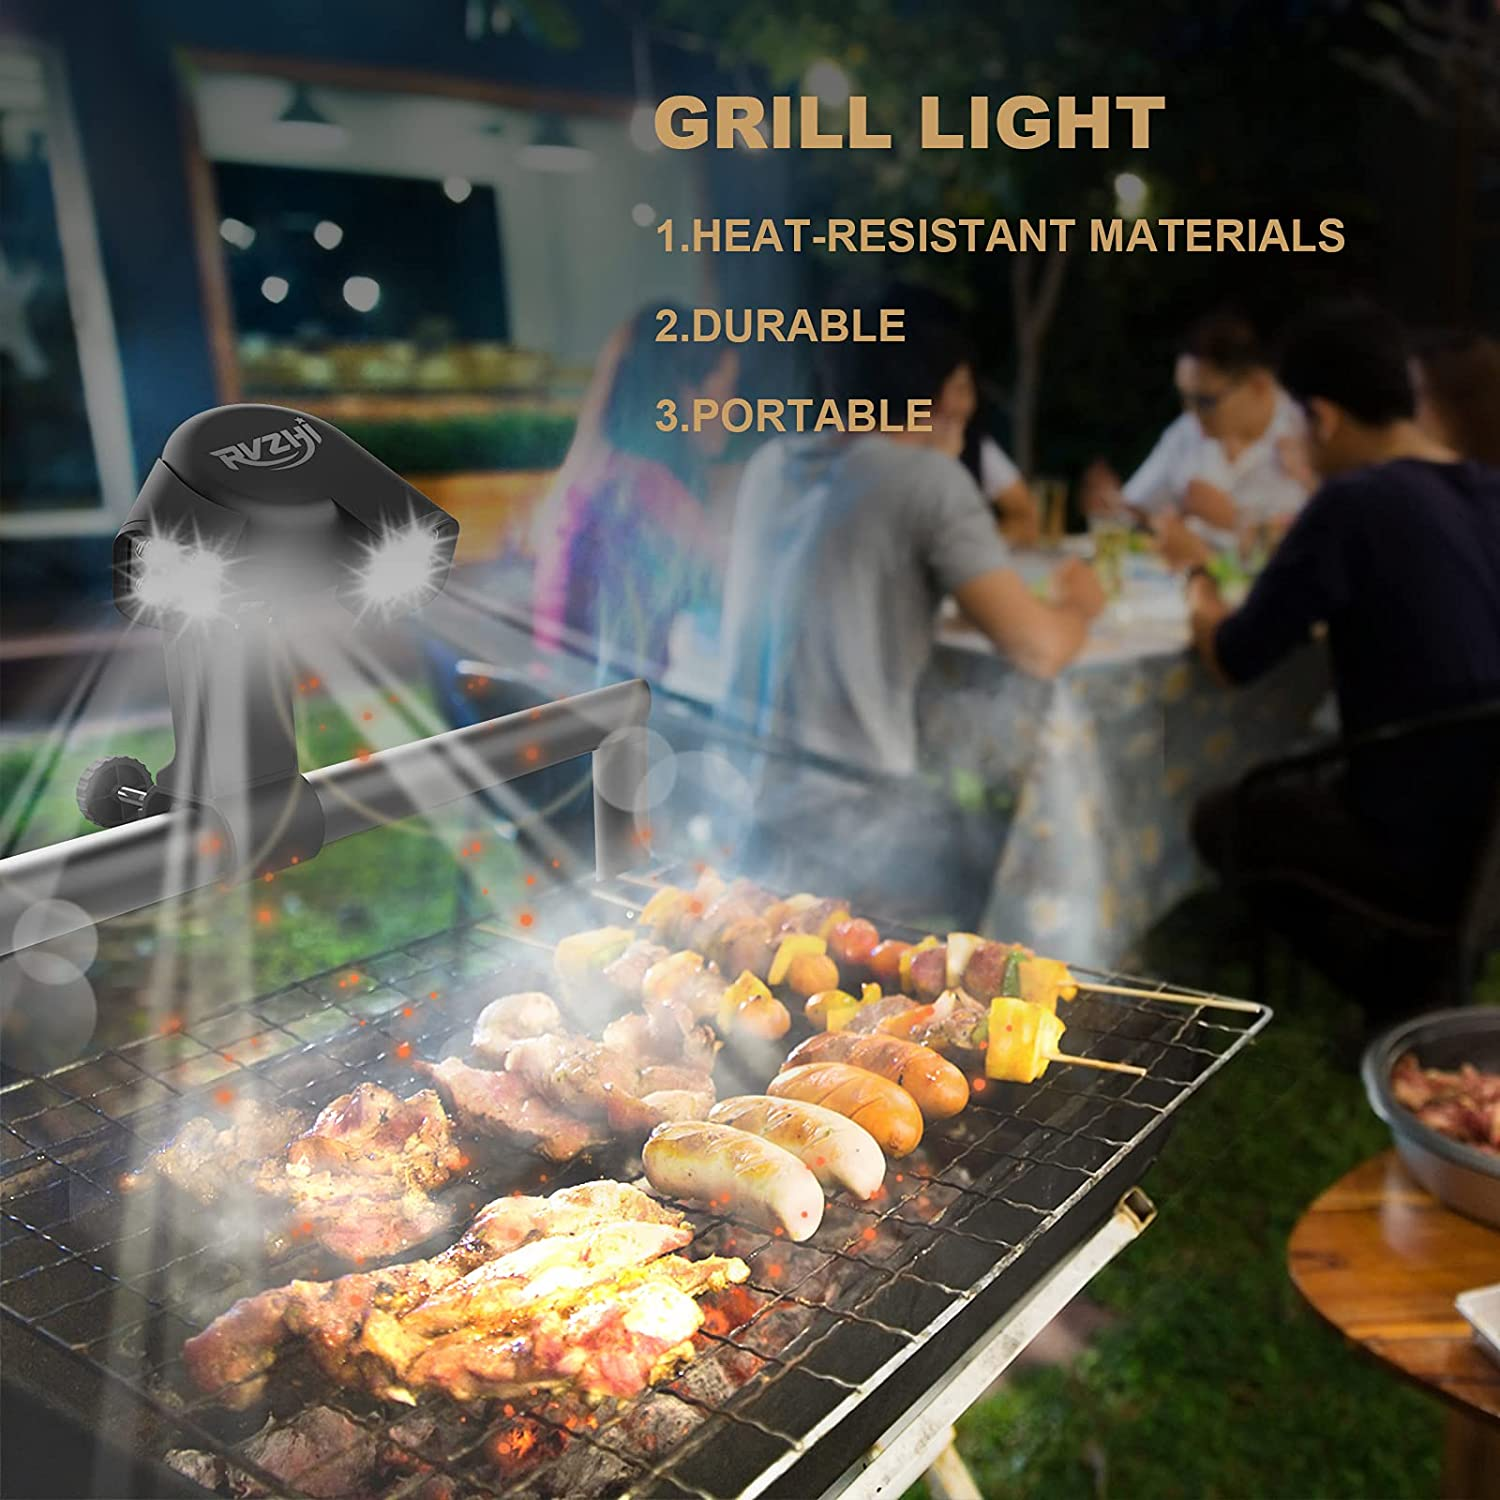 RVZHI Grill Light for BBQ, 180° Durable Flexible Barbecue Light for Night Outdoor, 10 Super Bright LED Lamps Grill Lighting Accessories for Grill Handle, Included 3 Battery - 2021 Upgrade Version : Patio, Lawn & Garden